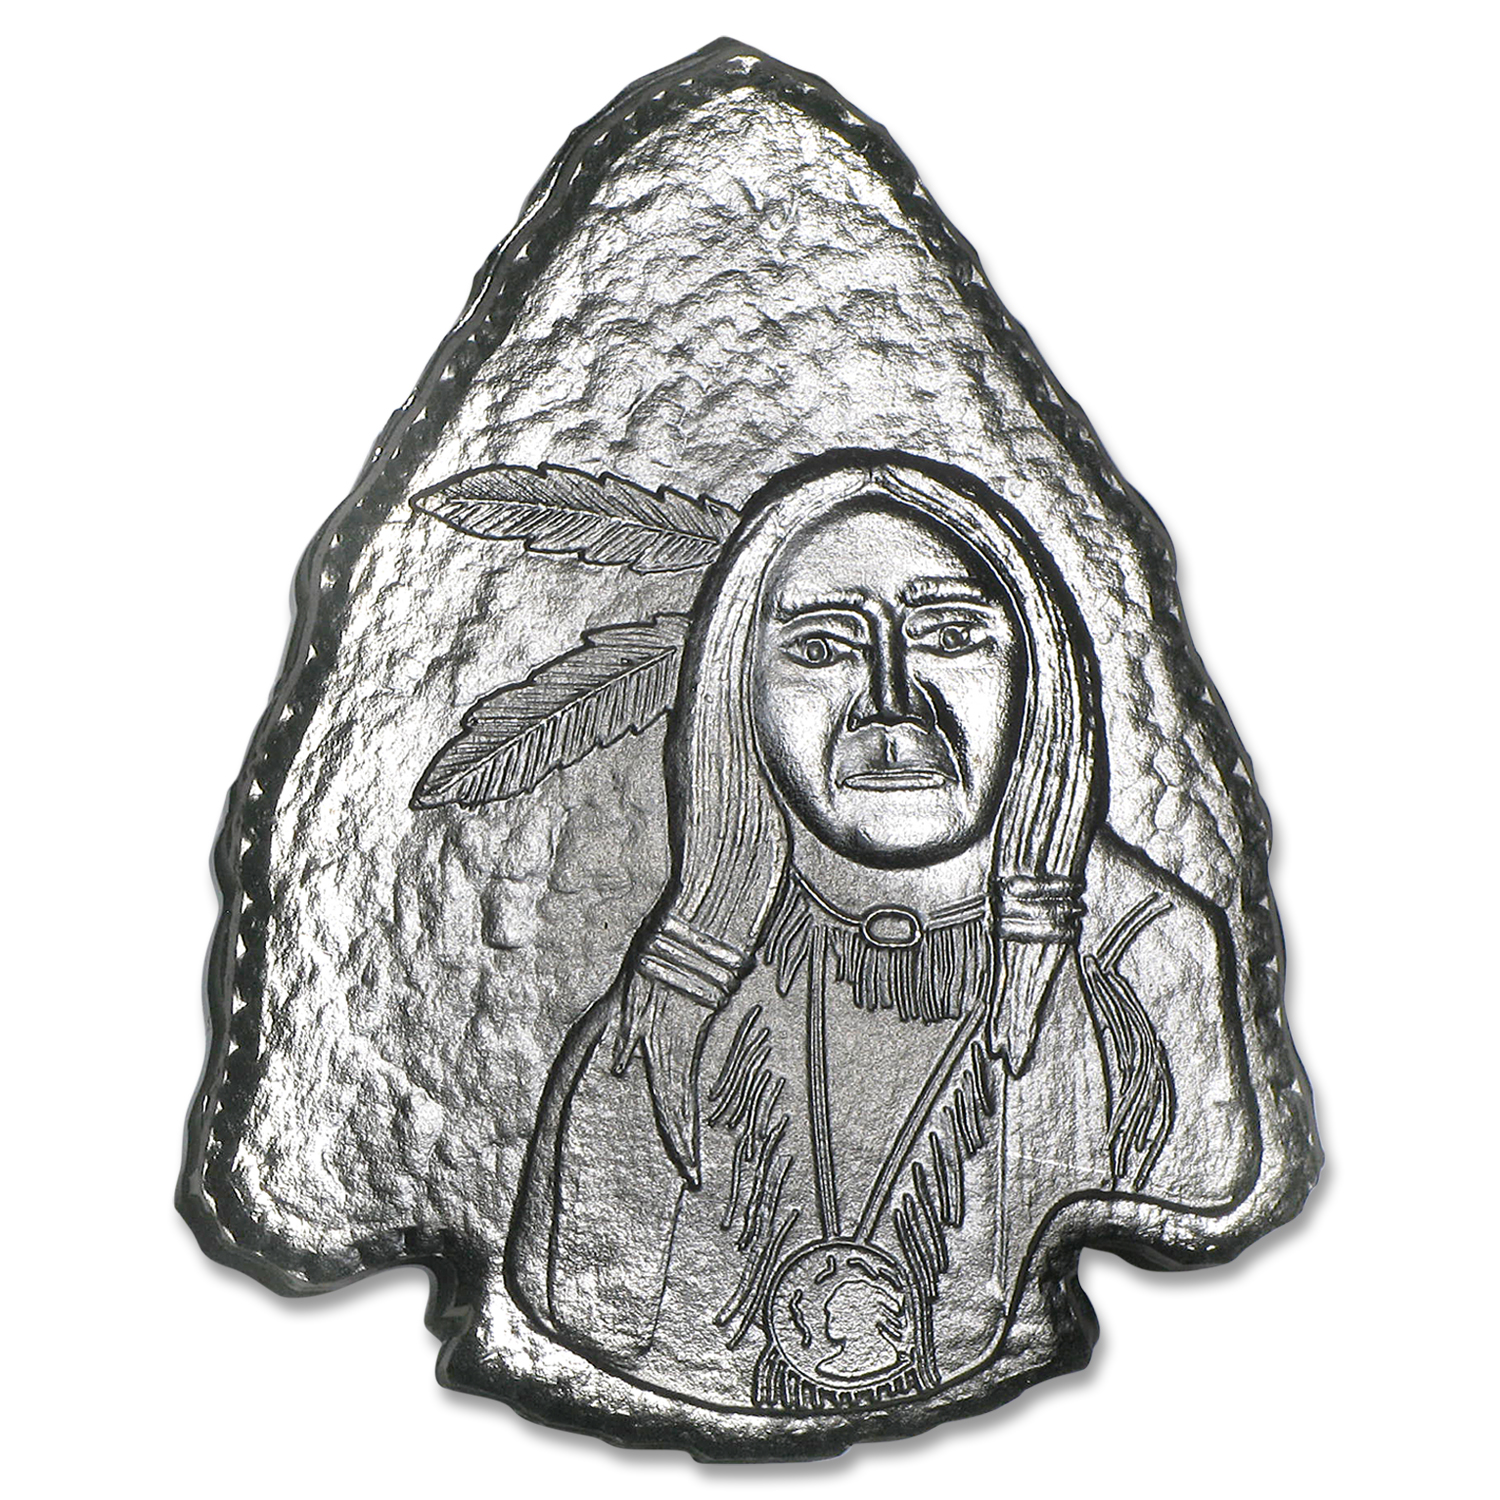 1 oz Silver Arrowheads - Indian Warrior